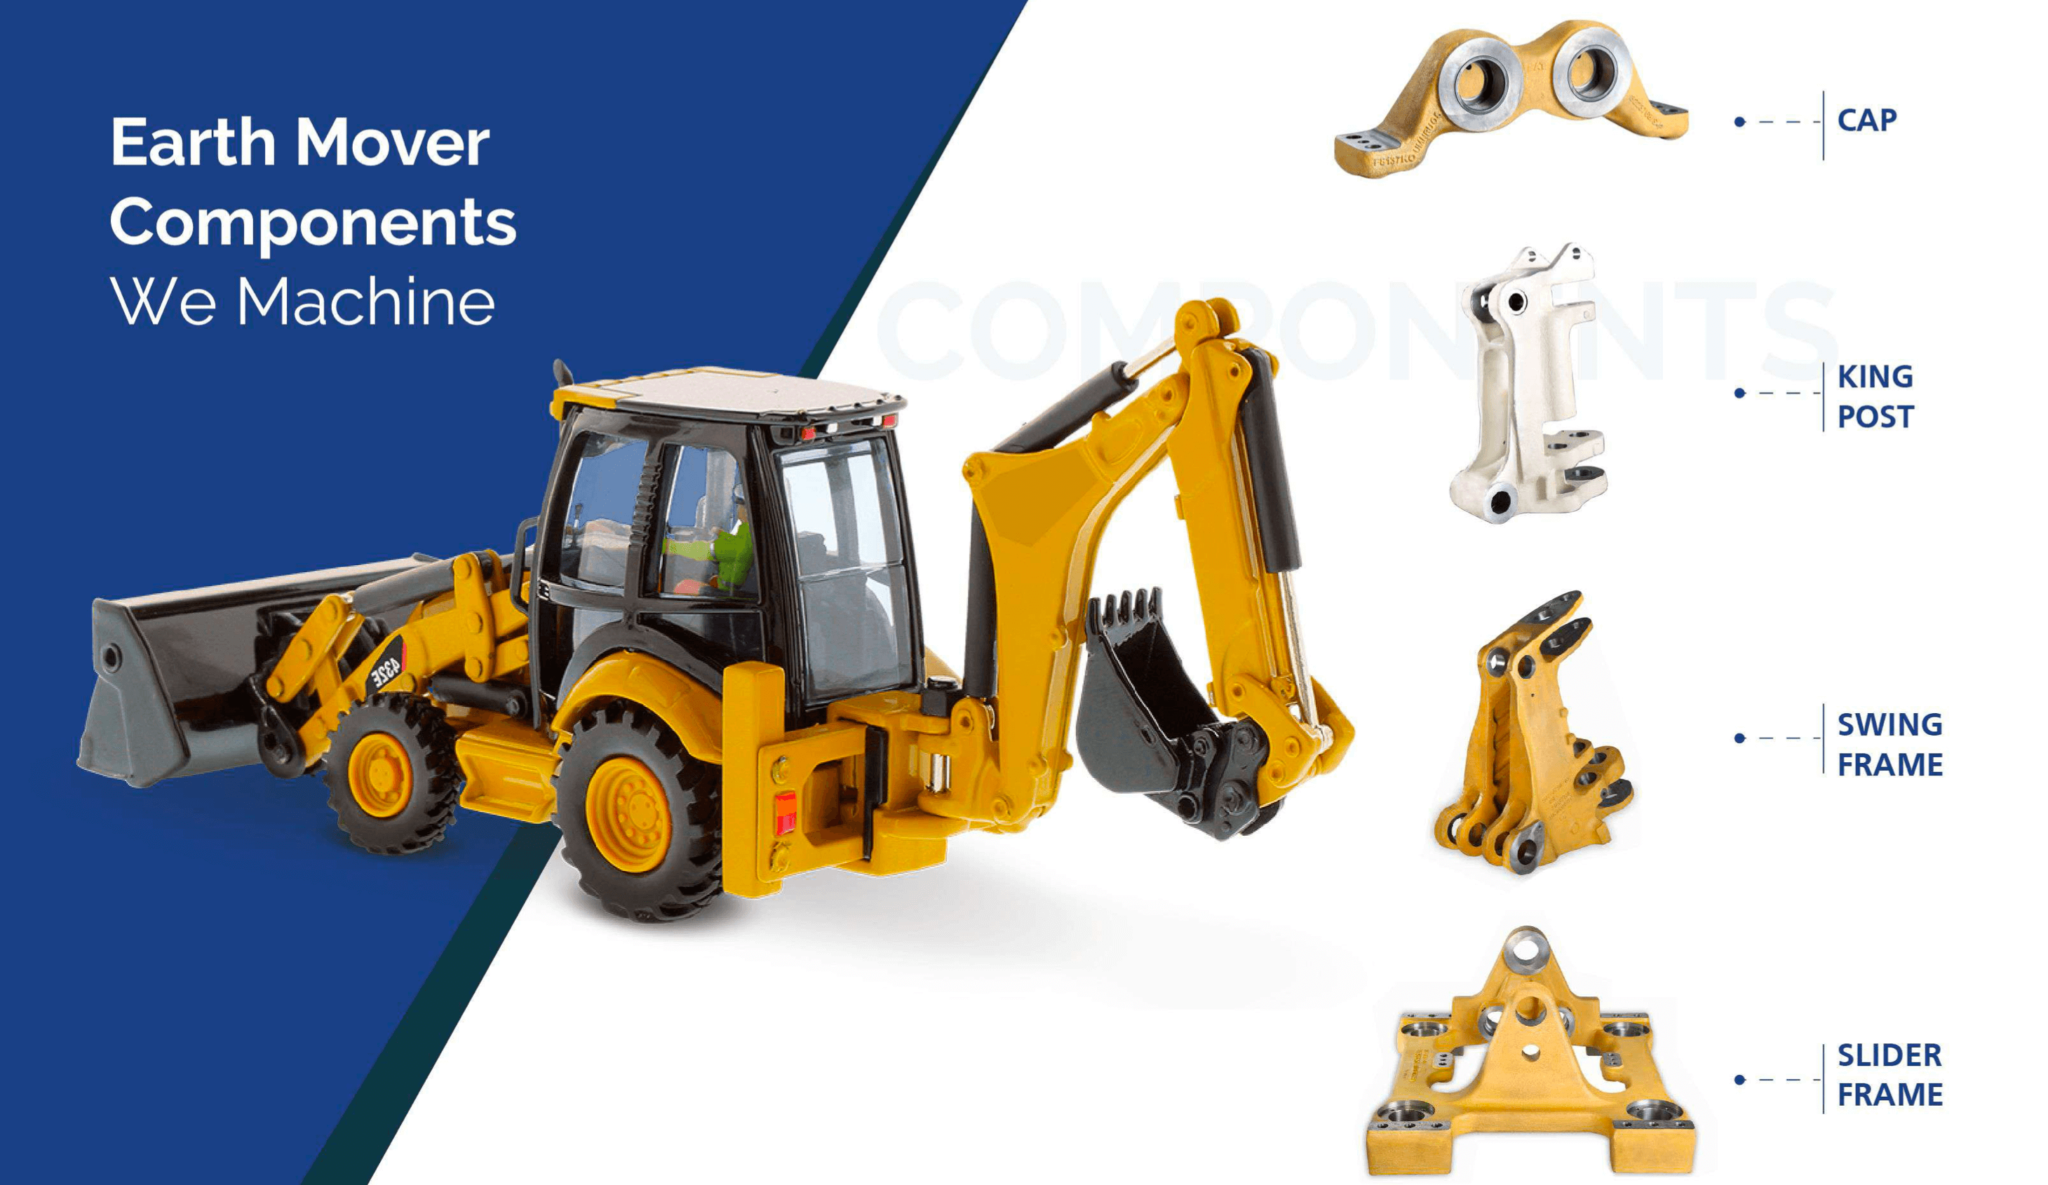 Earth mover components